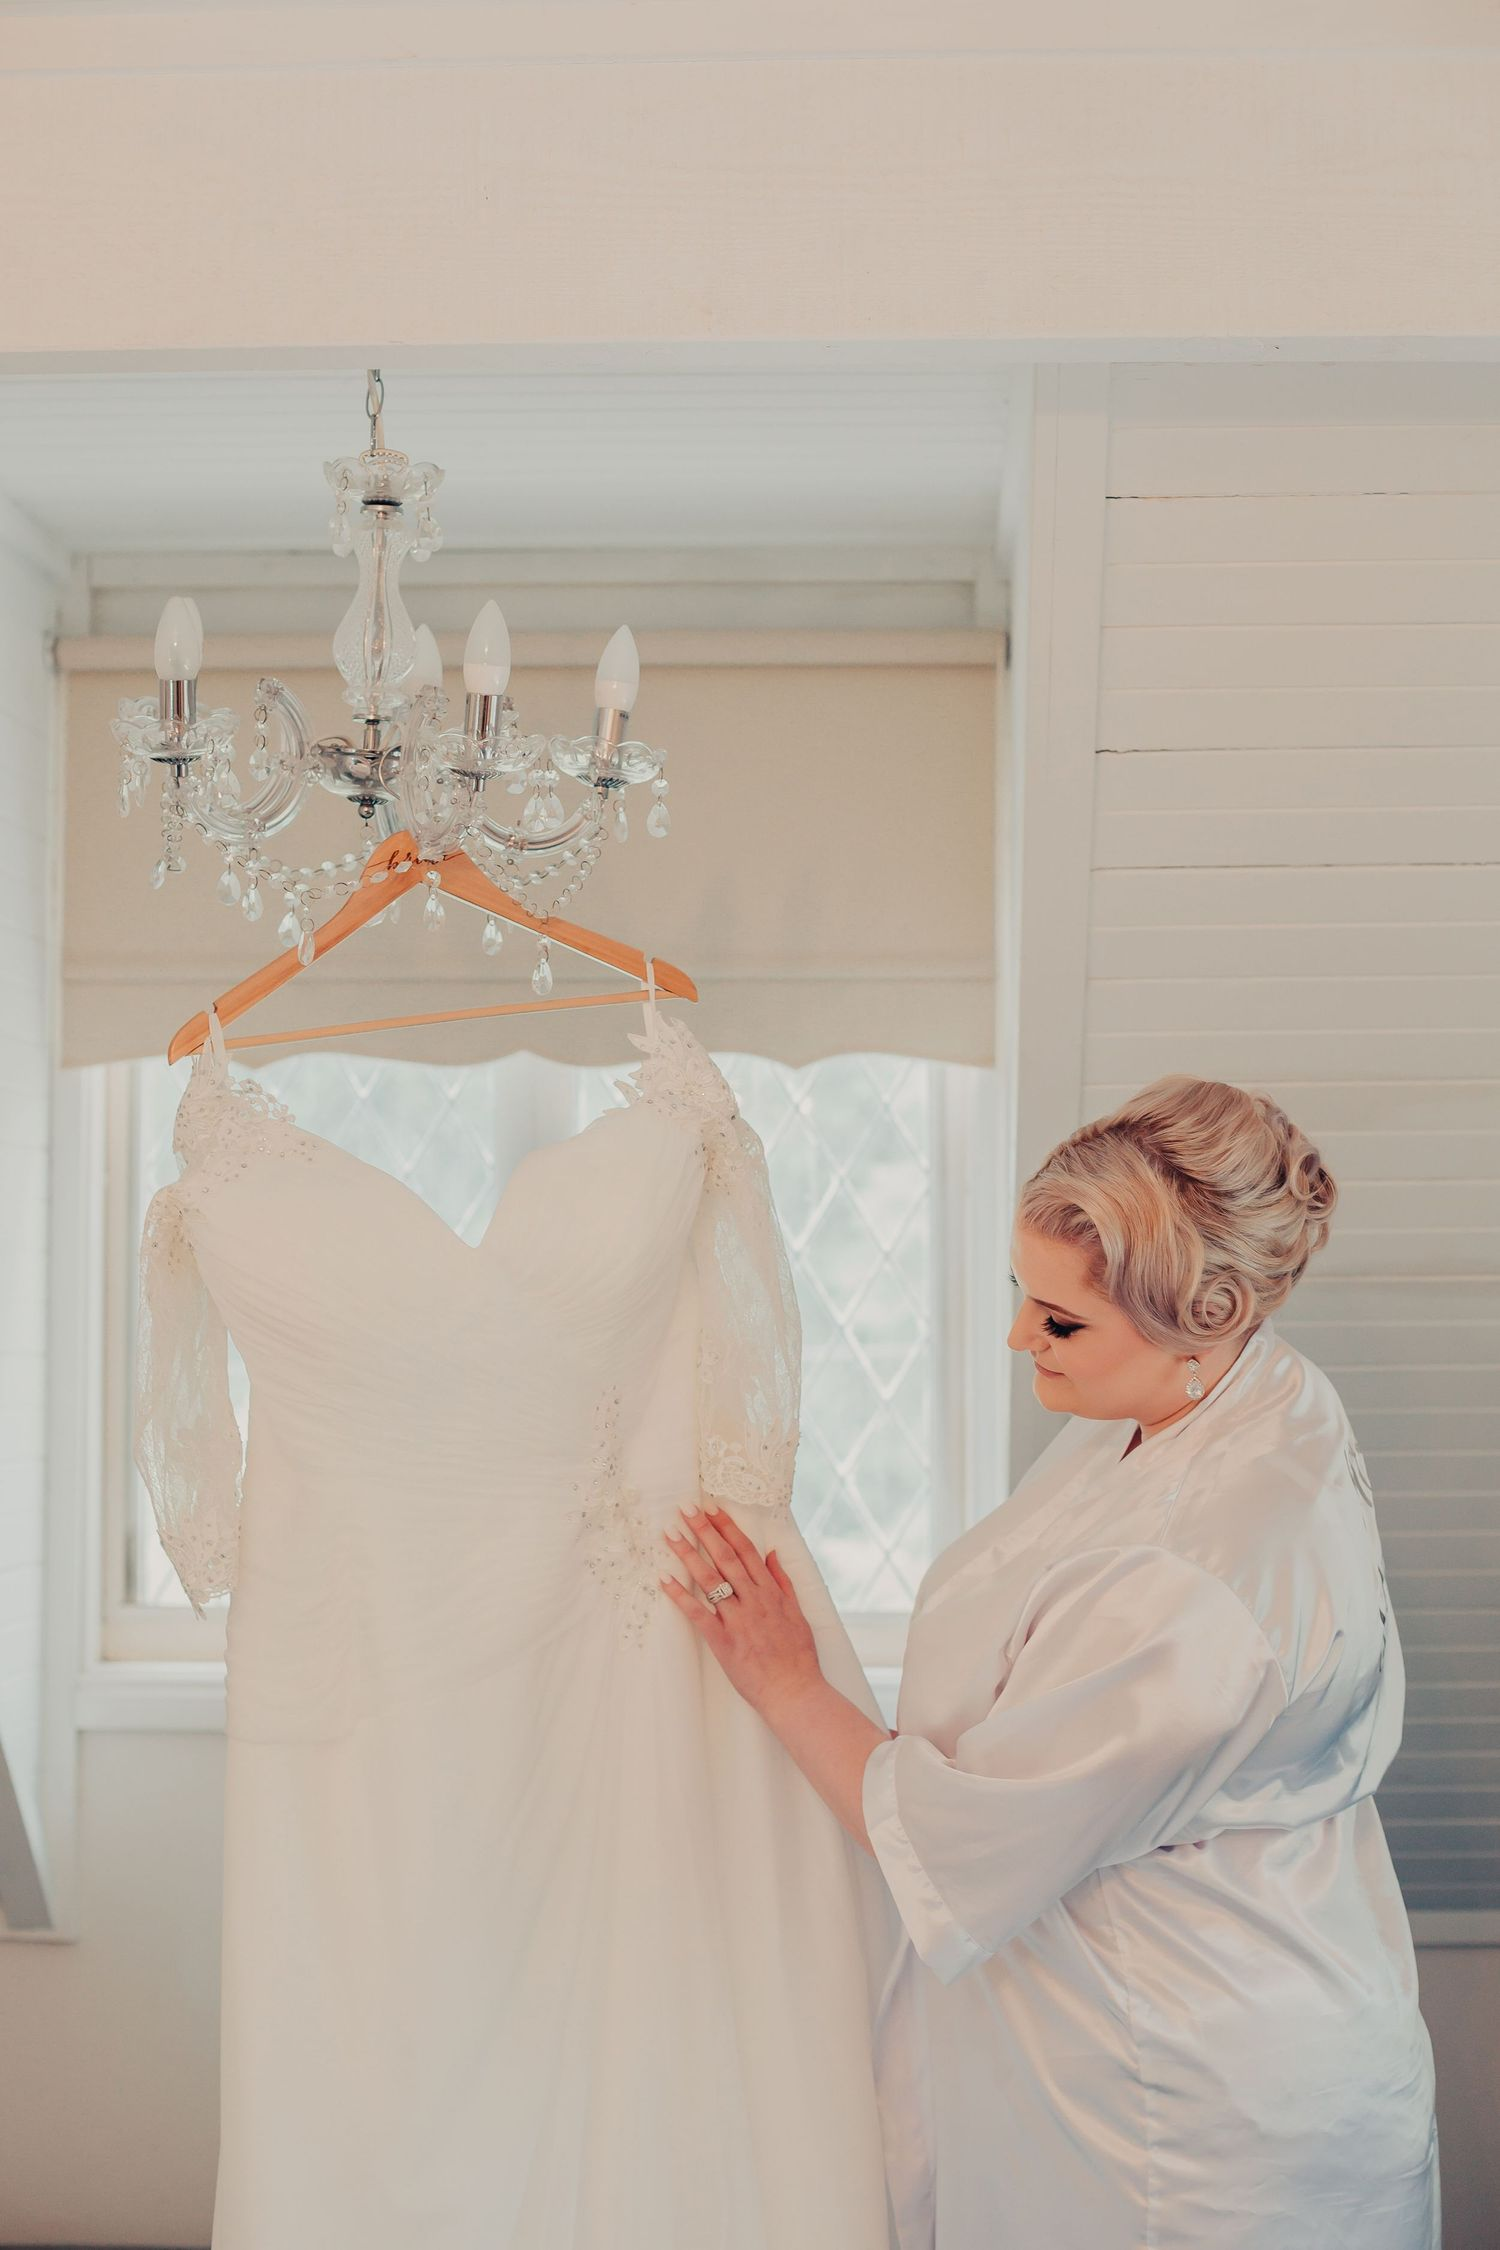 Bride in robe looking at wedding gown vintage style elopement meloburne wedding photography